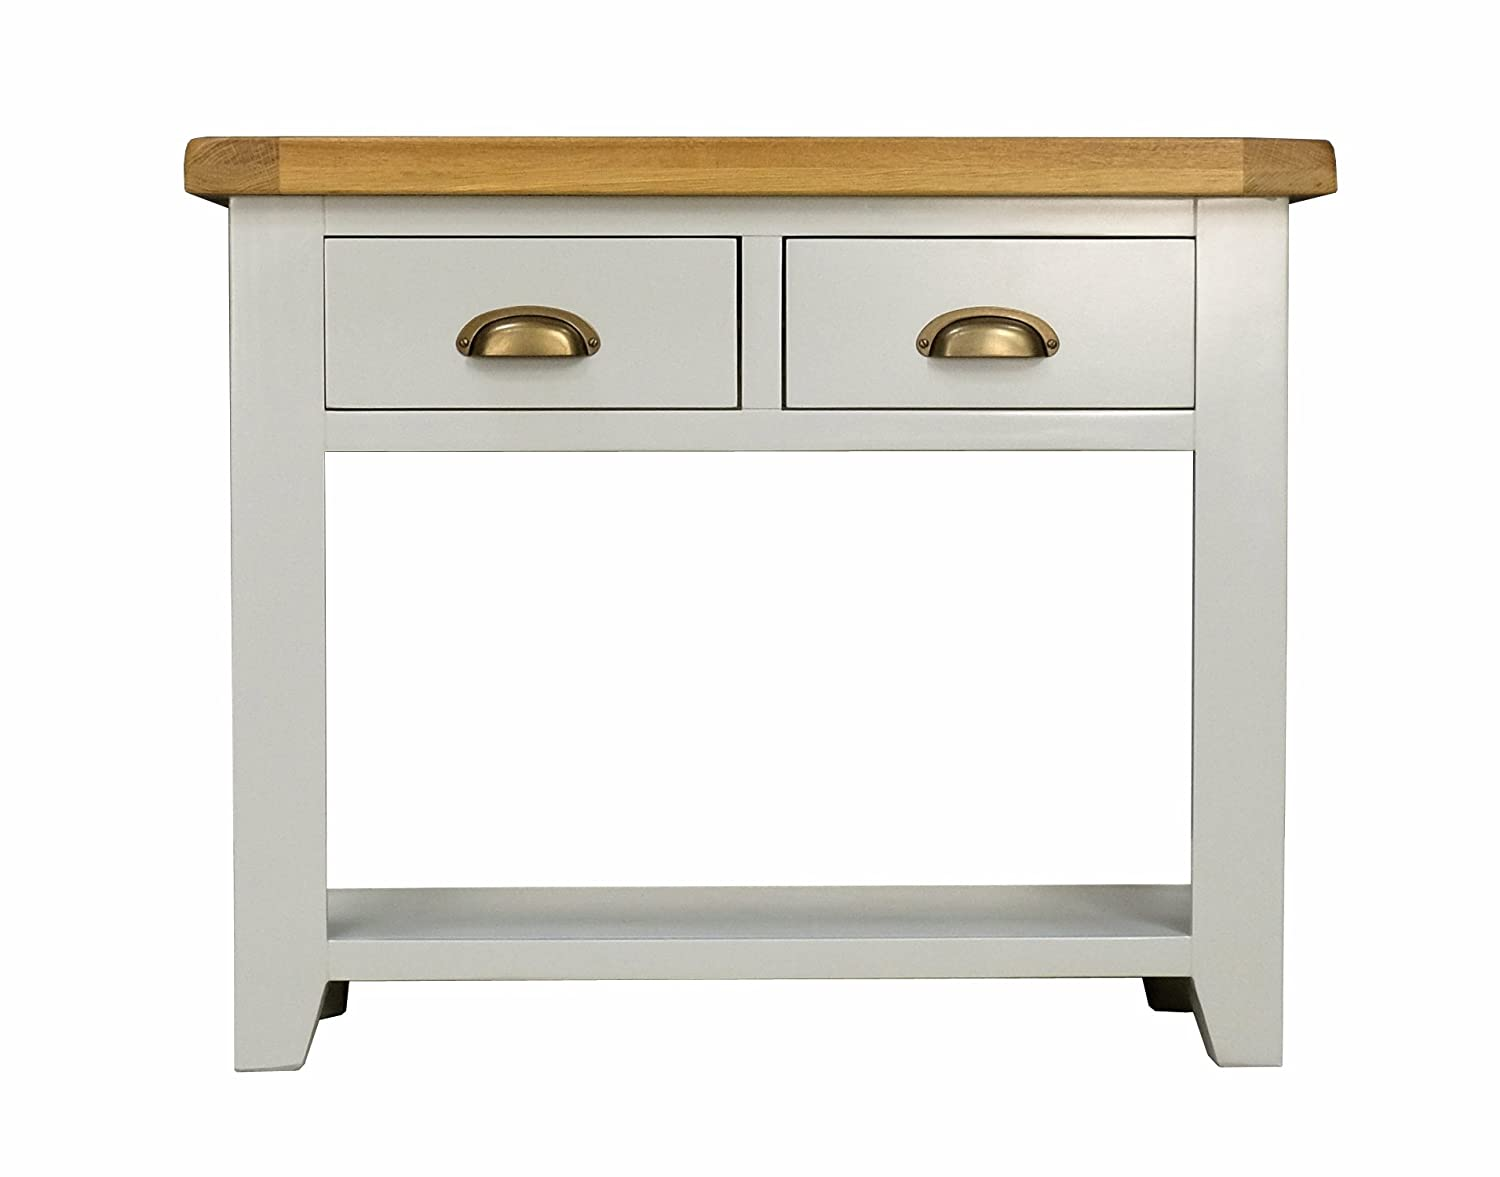 Arklow Painted Oak Dovetail Grey Console Table 2 Drawers & Shelf/Living Room Storage